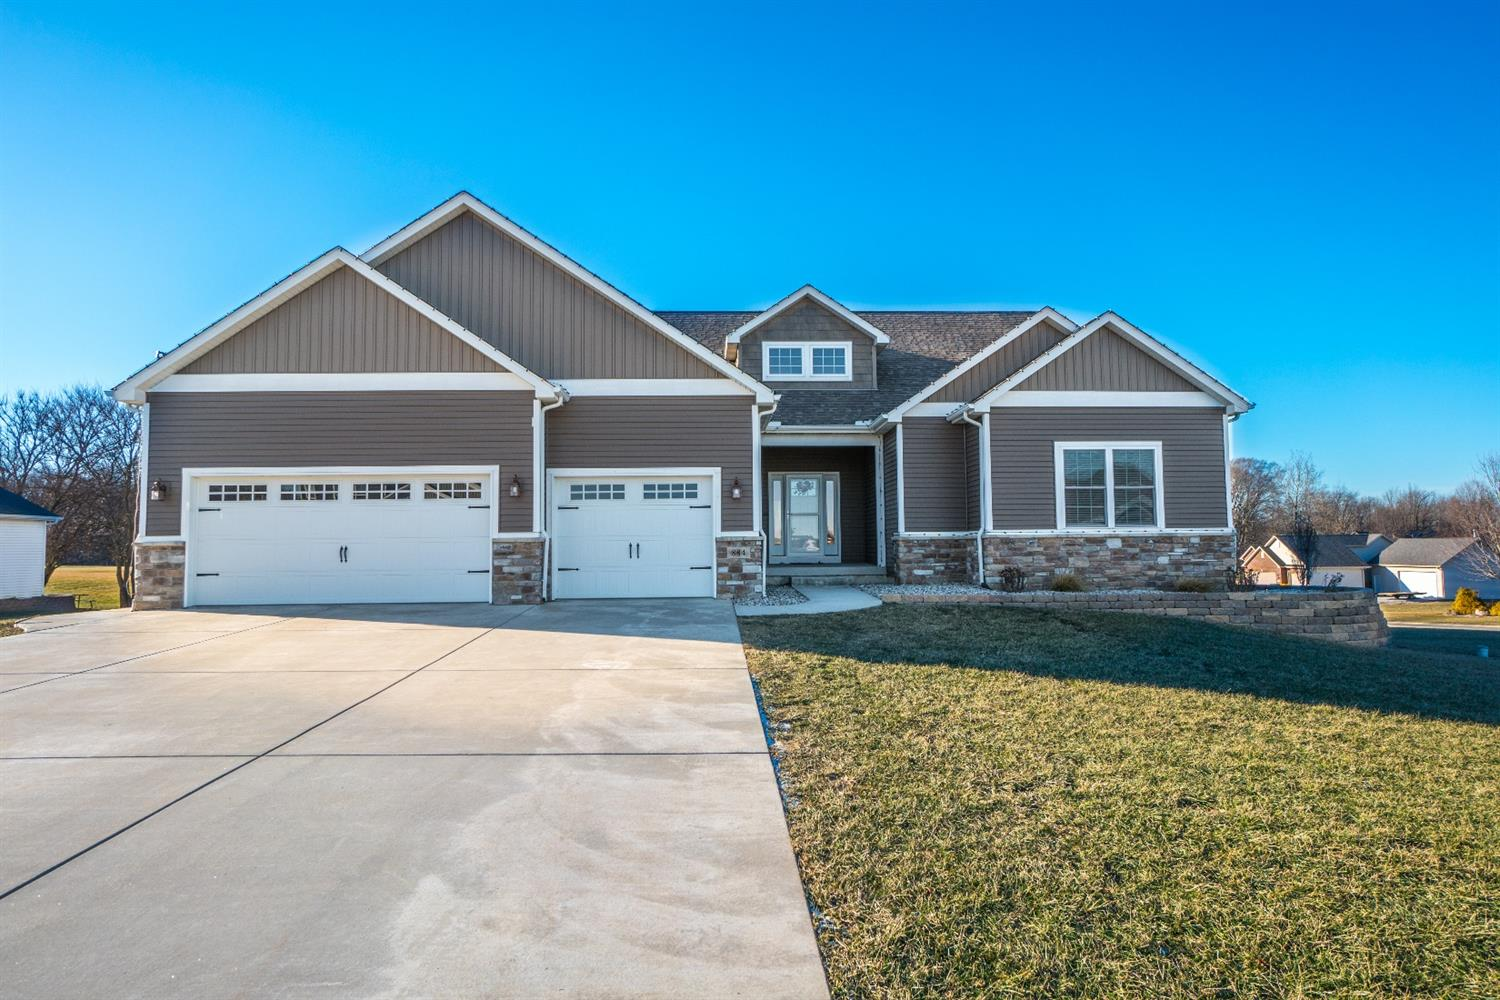 884 WHITESTONE DRIVE, VALPARAISO, IN 46383